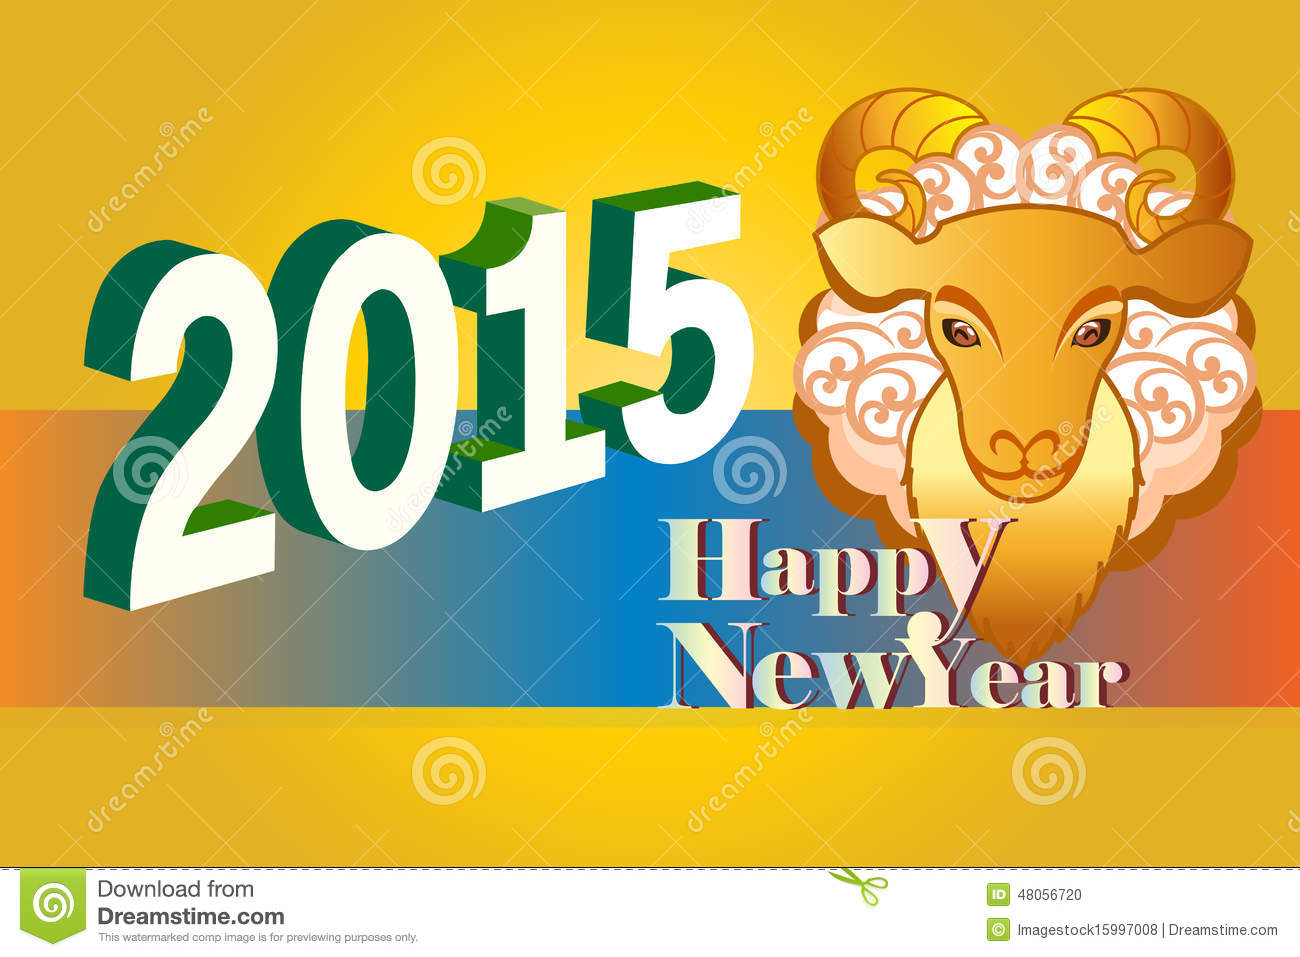 Happy new year korean hd wallpapers plus 2015 korean happy new year m4hsunfo Images